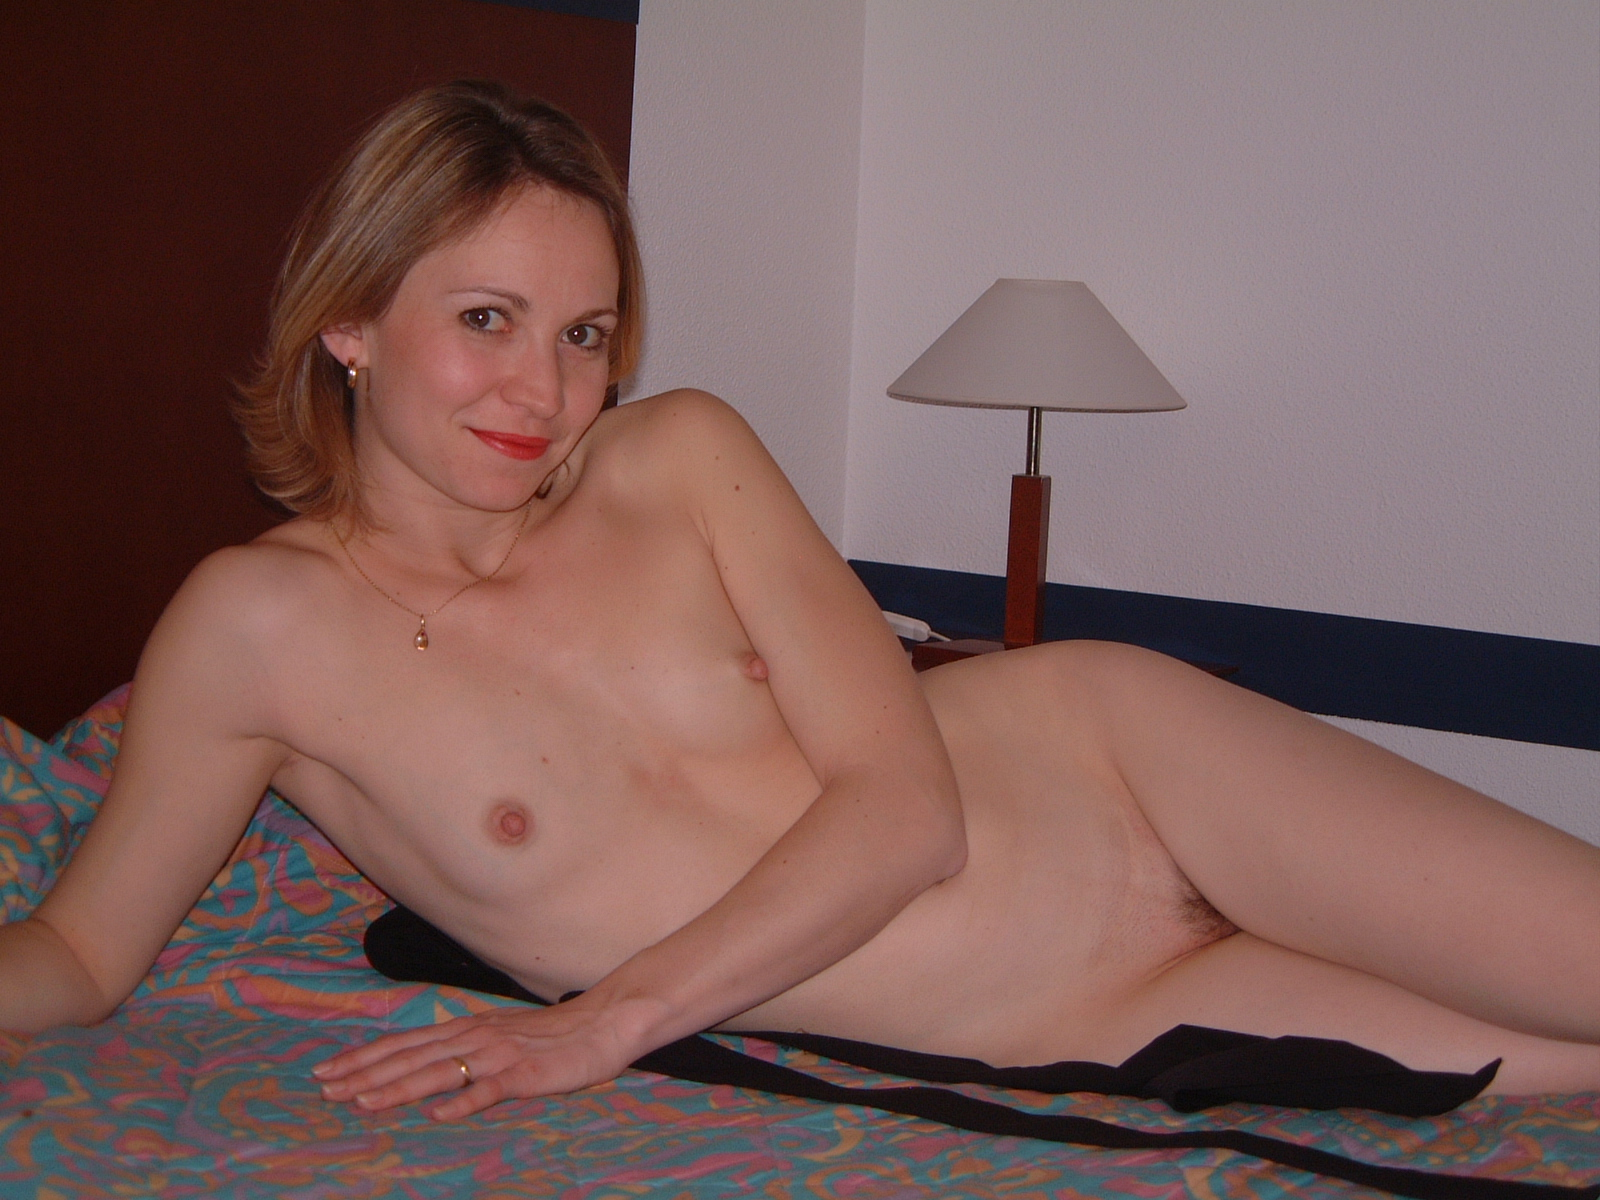 flat-chested-amateur-wife-young-virgins